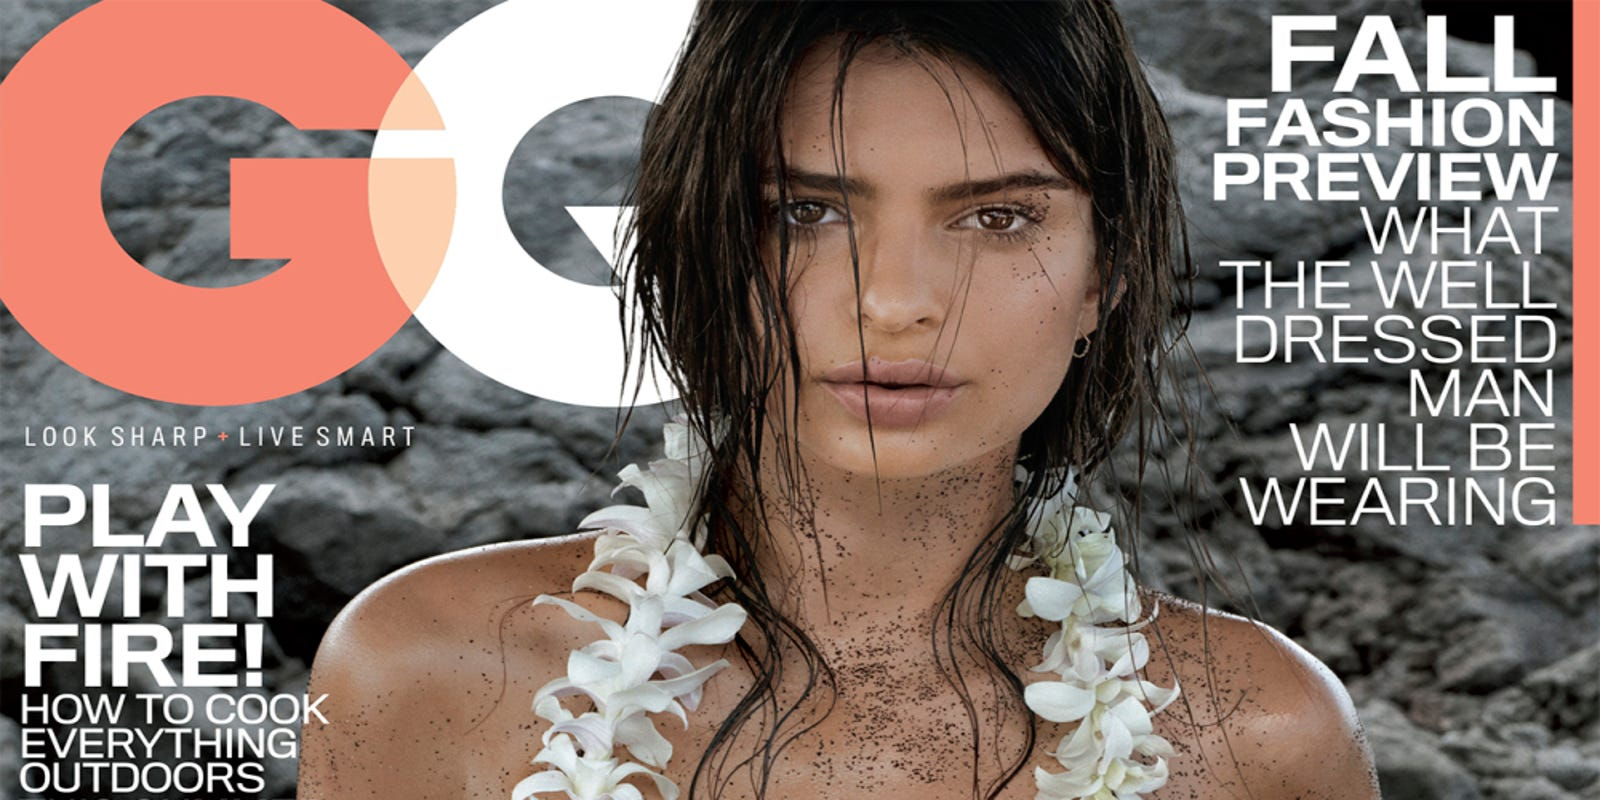 Ana Belen Topless blurred lines' model sizzles on topless 'gq' cover